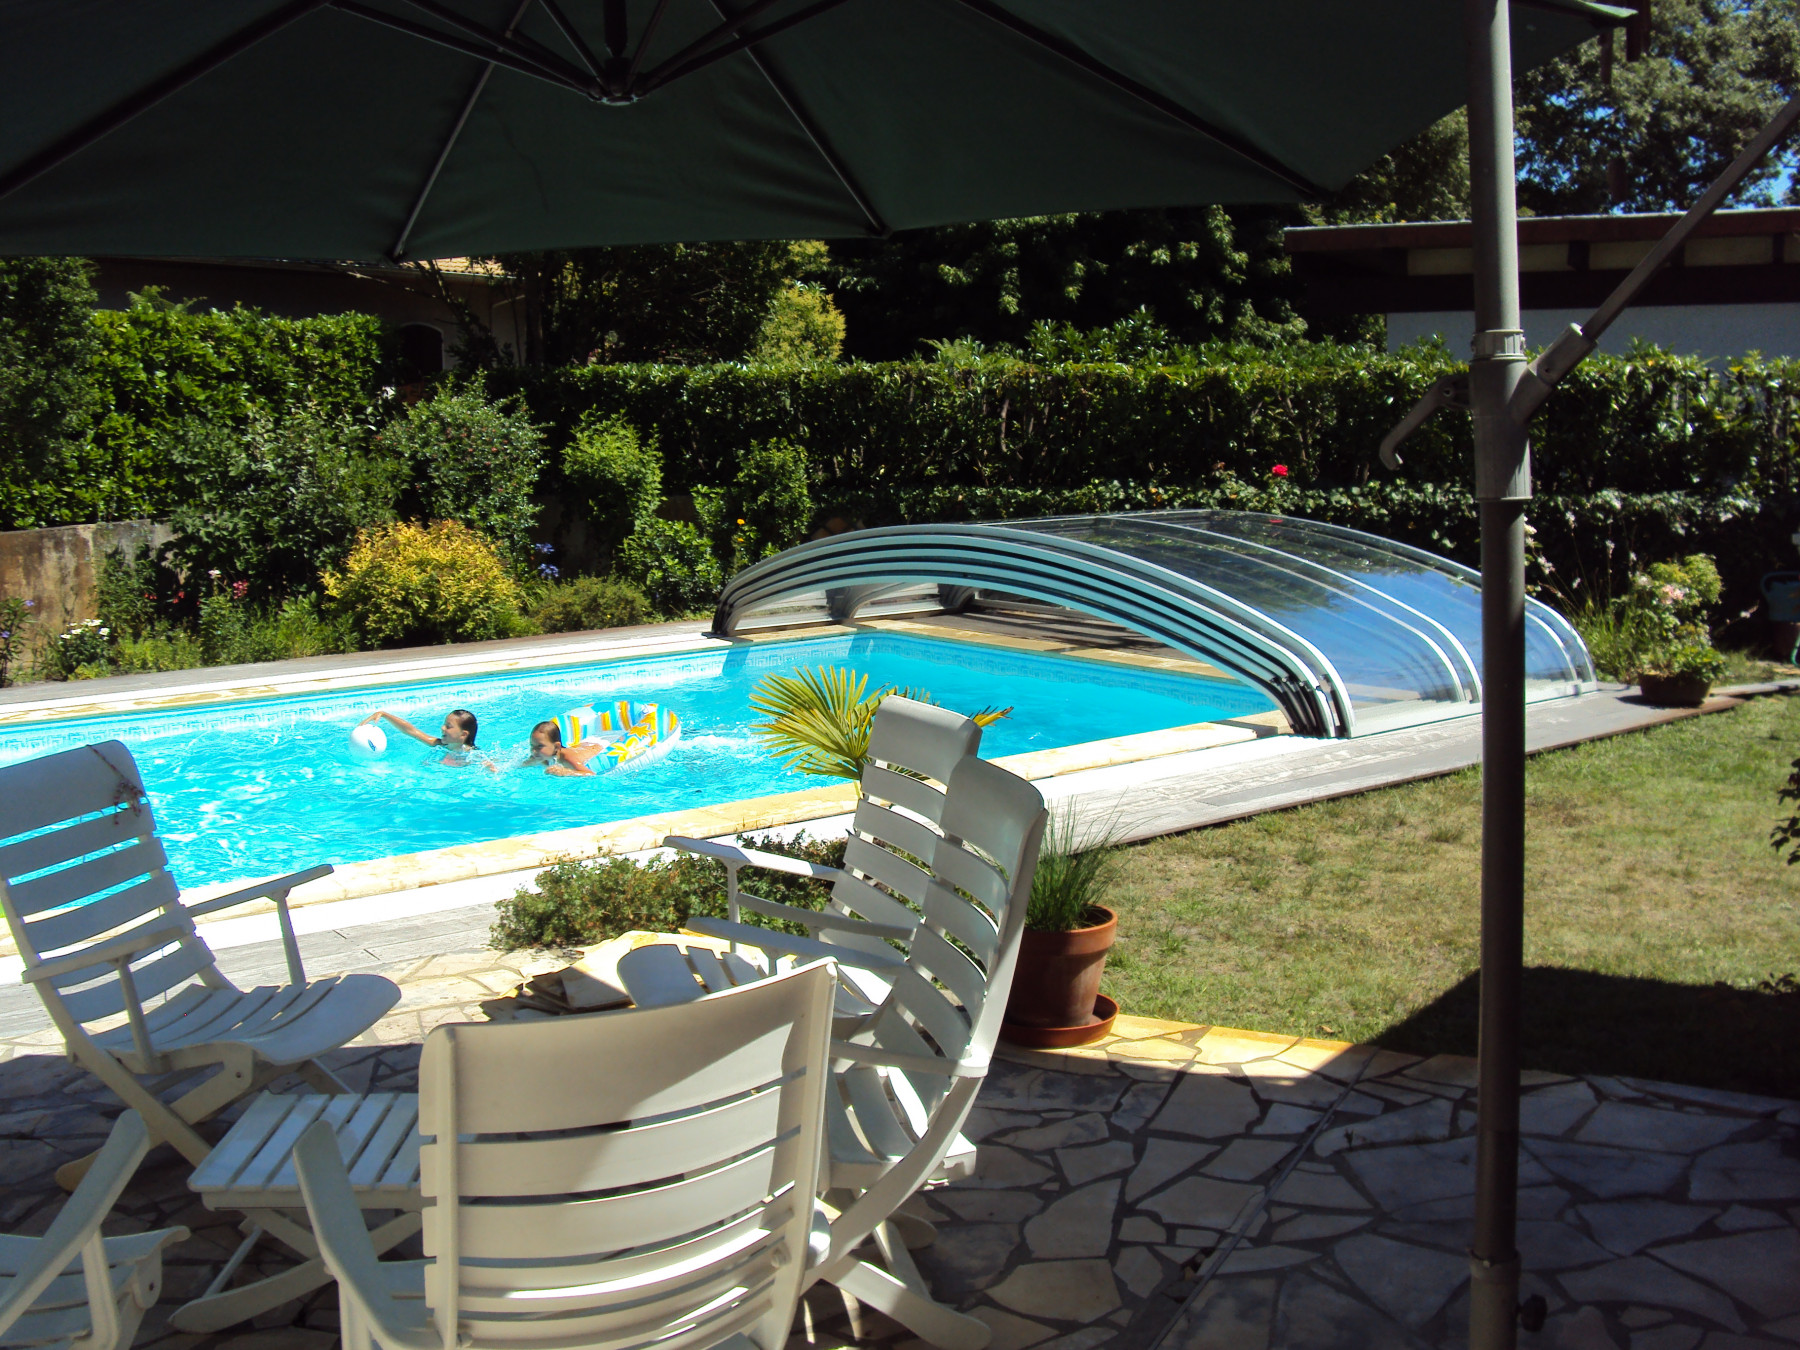 Abri de piscine bas cintral for Abris piscine uv